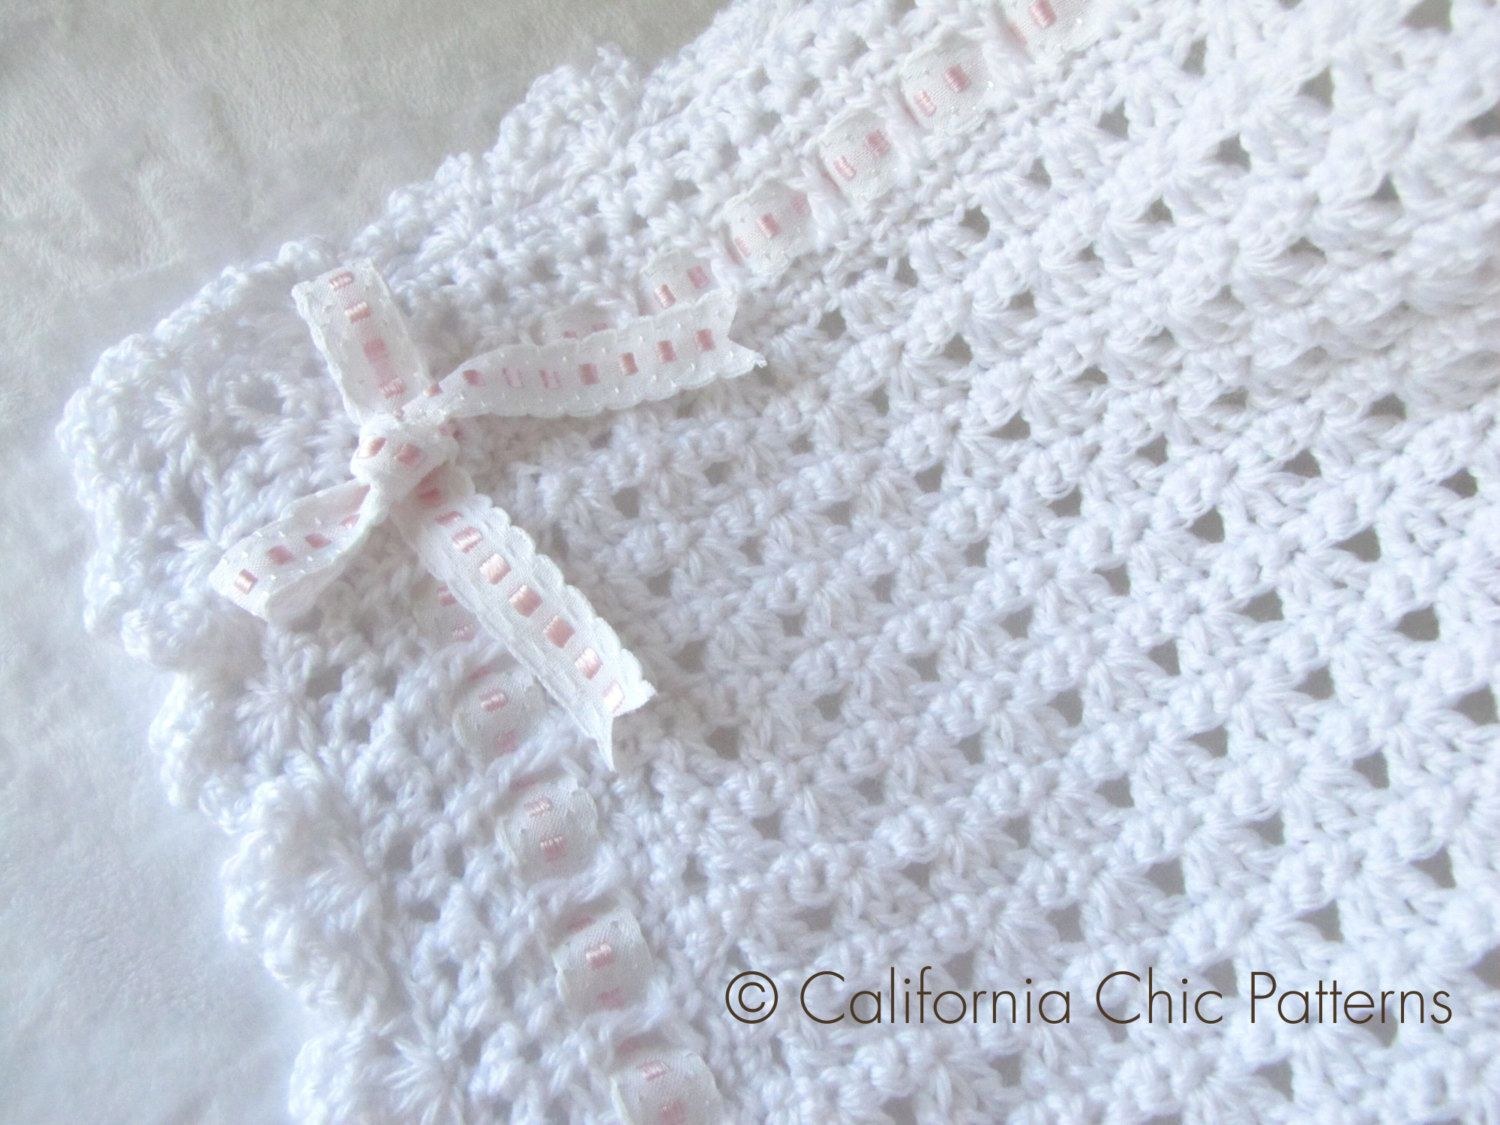 Crochet baby blanket pattern 41 angel series by calichicpatterns crochet baby blanket pattern 41 angel series by calichicpatterns 450 bankloansurffo Gallery